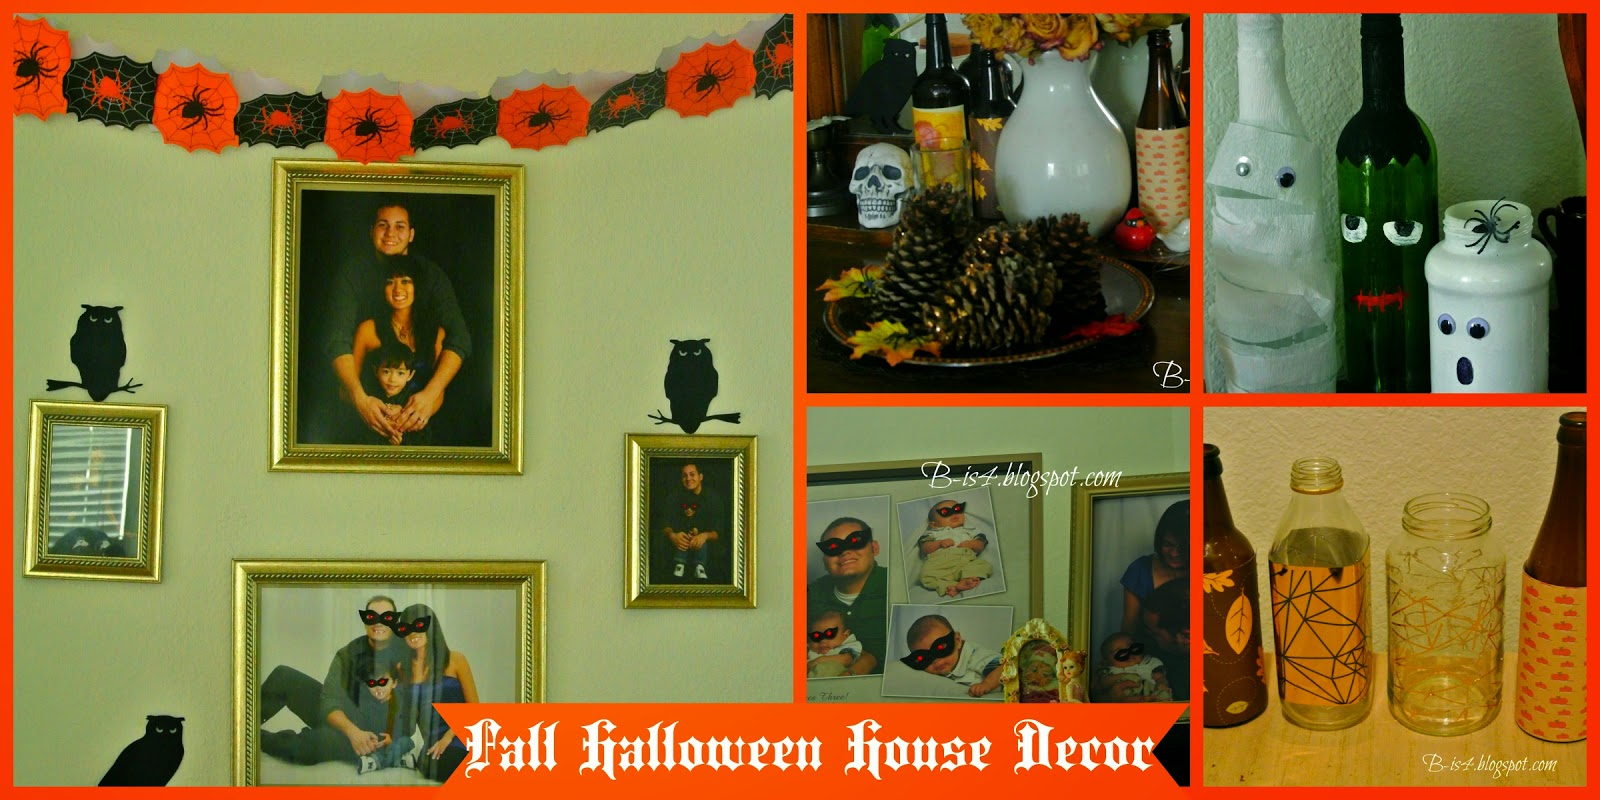 http://b-is4.blogspot.com/2014/10/fall-halloween-house-decor-and-wordless.html